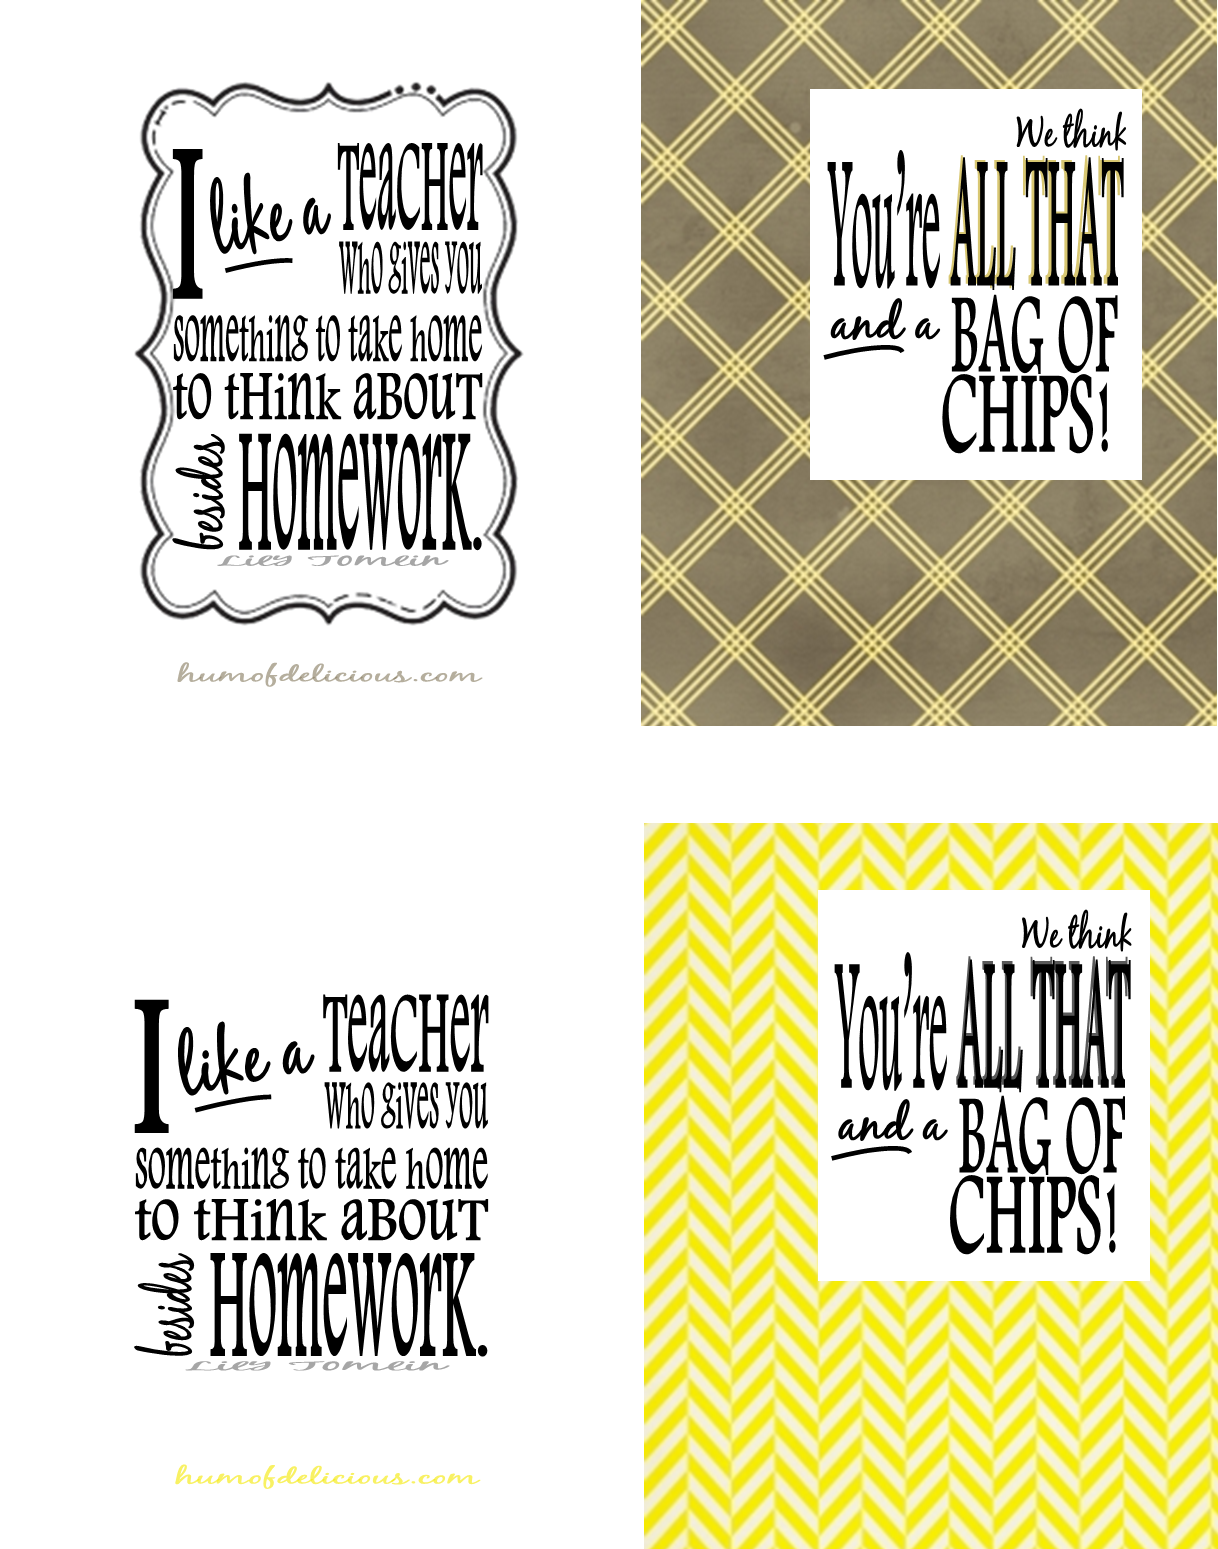 image relating to You're All That and a Bag of Chips Printable identified as humofdelicious printables: All That and a Bag of Chips